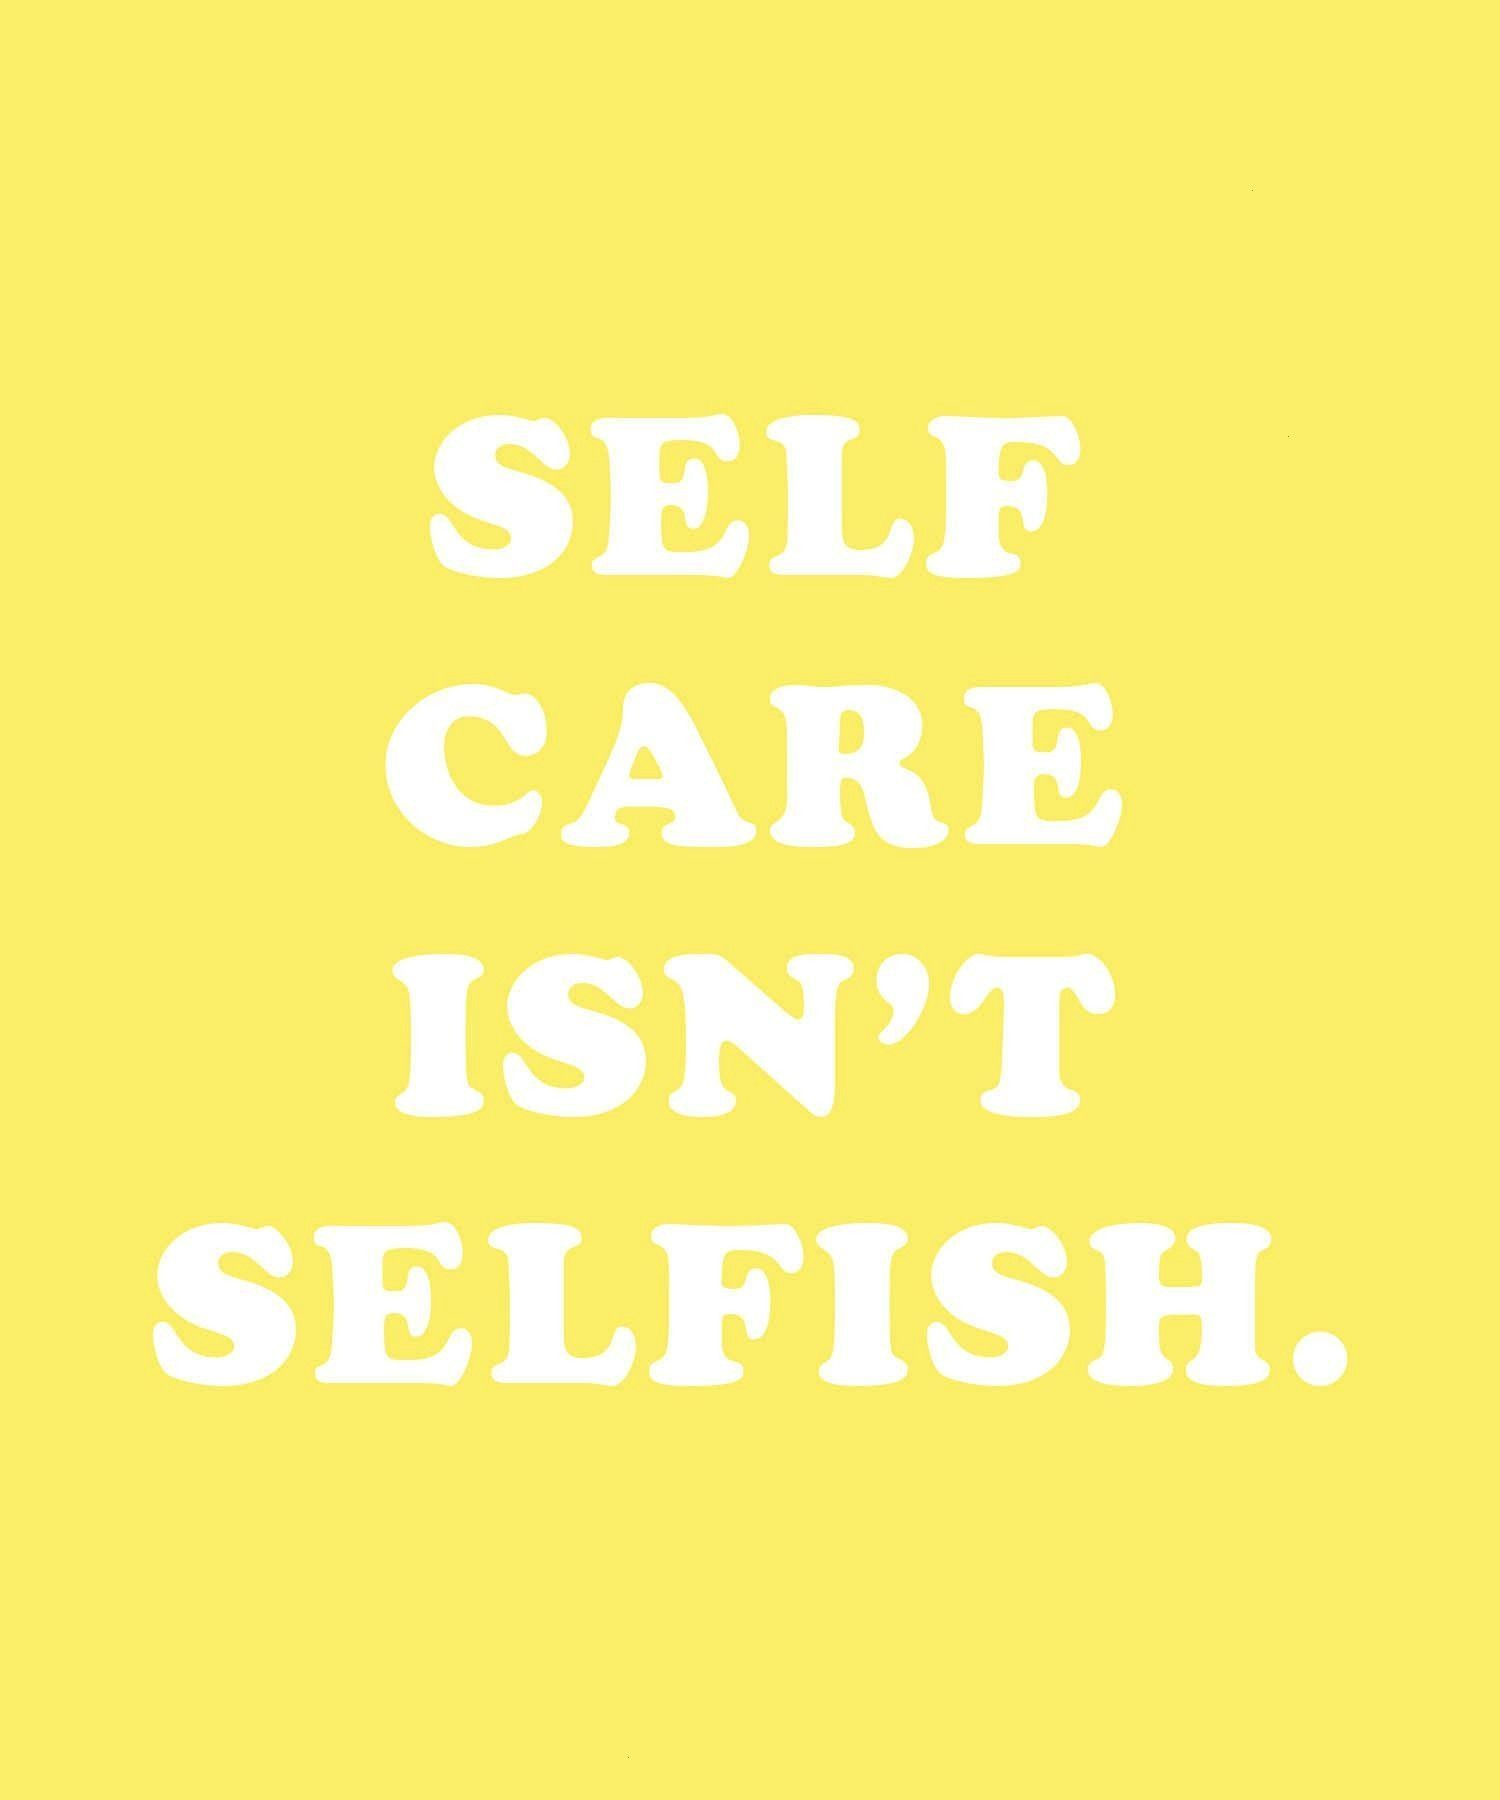 care isnt selfish Your mental health is just as important as your physical health Heres why you shouldnt feel guilty taking a mental health day when you need it aesthetic...